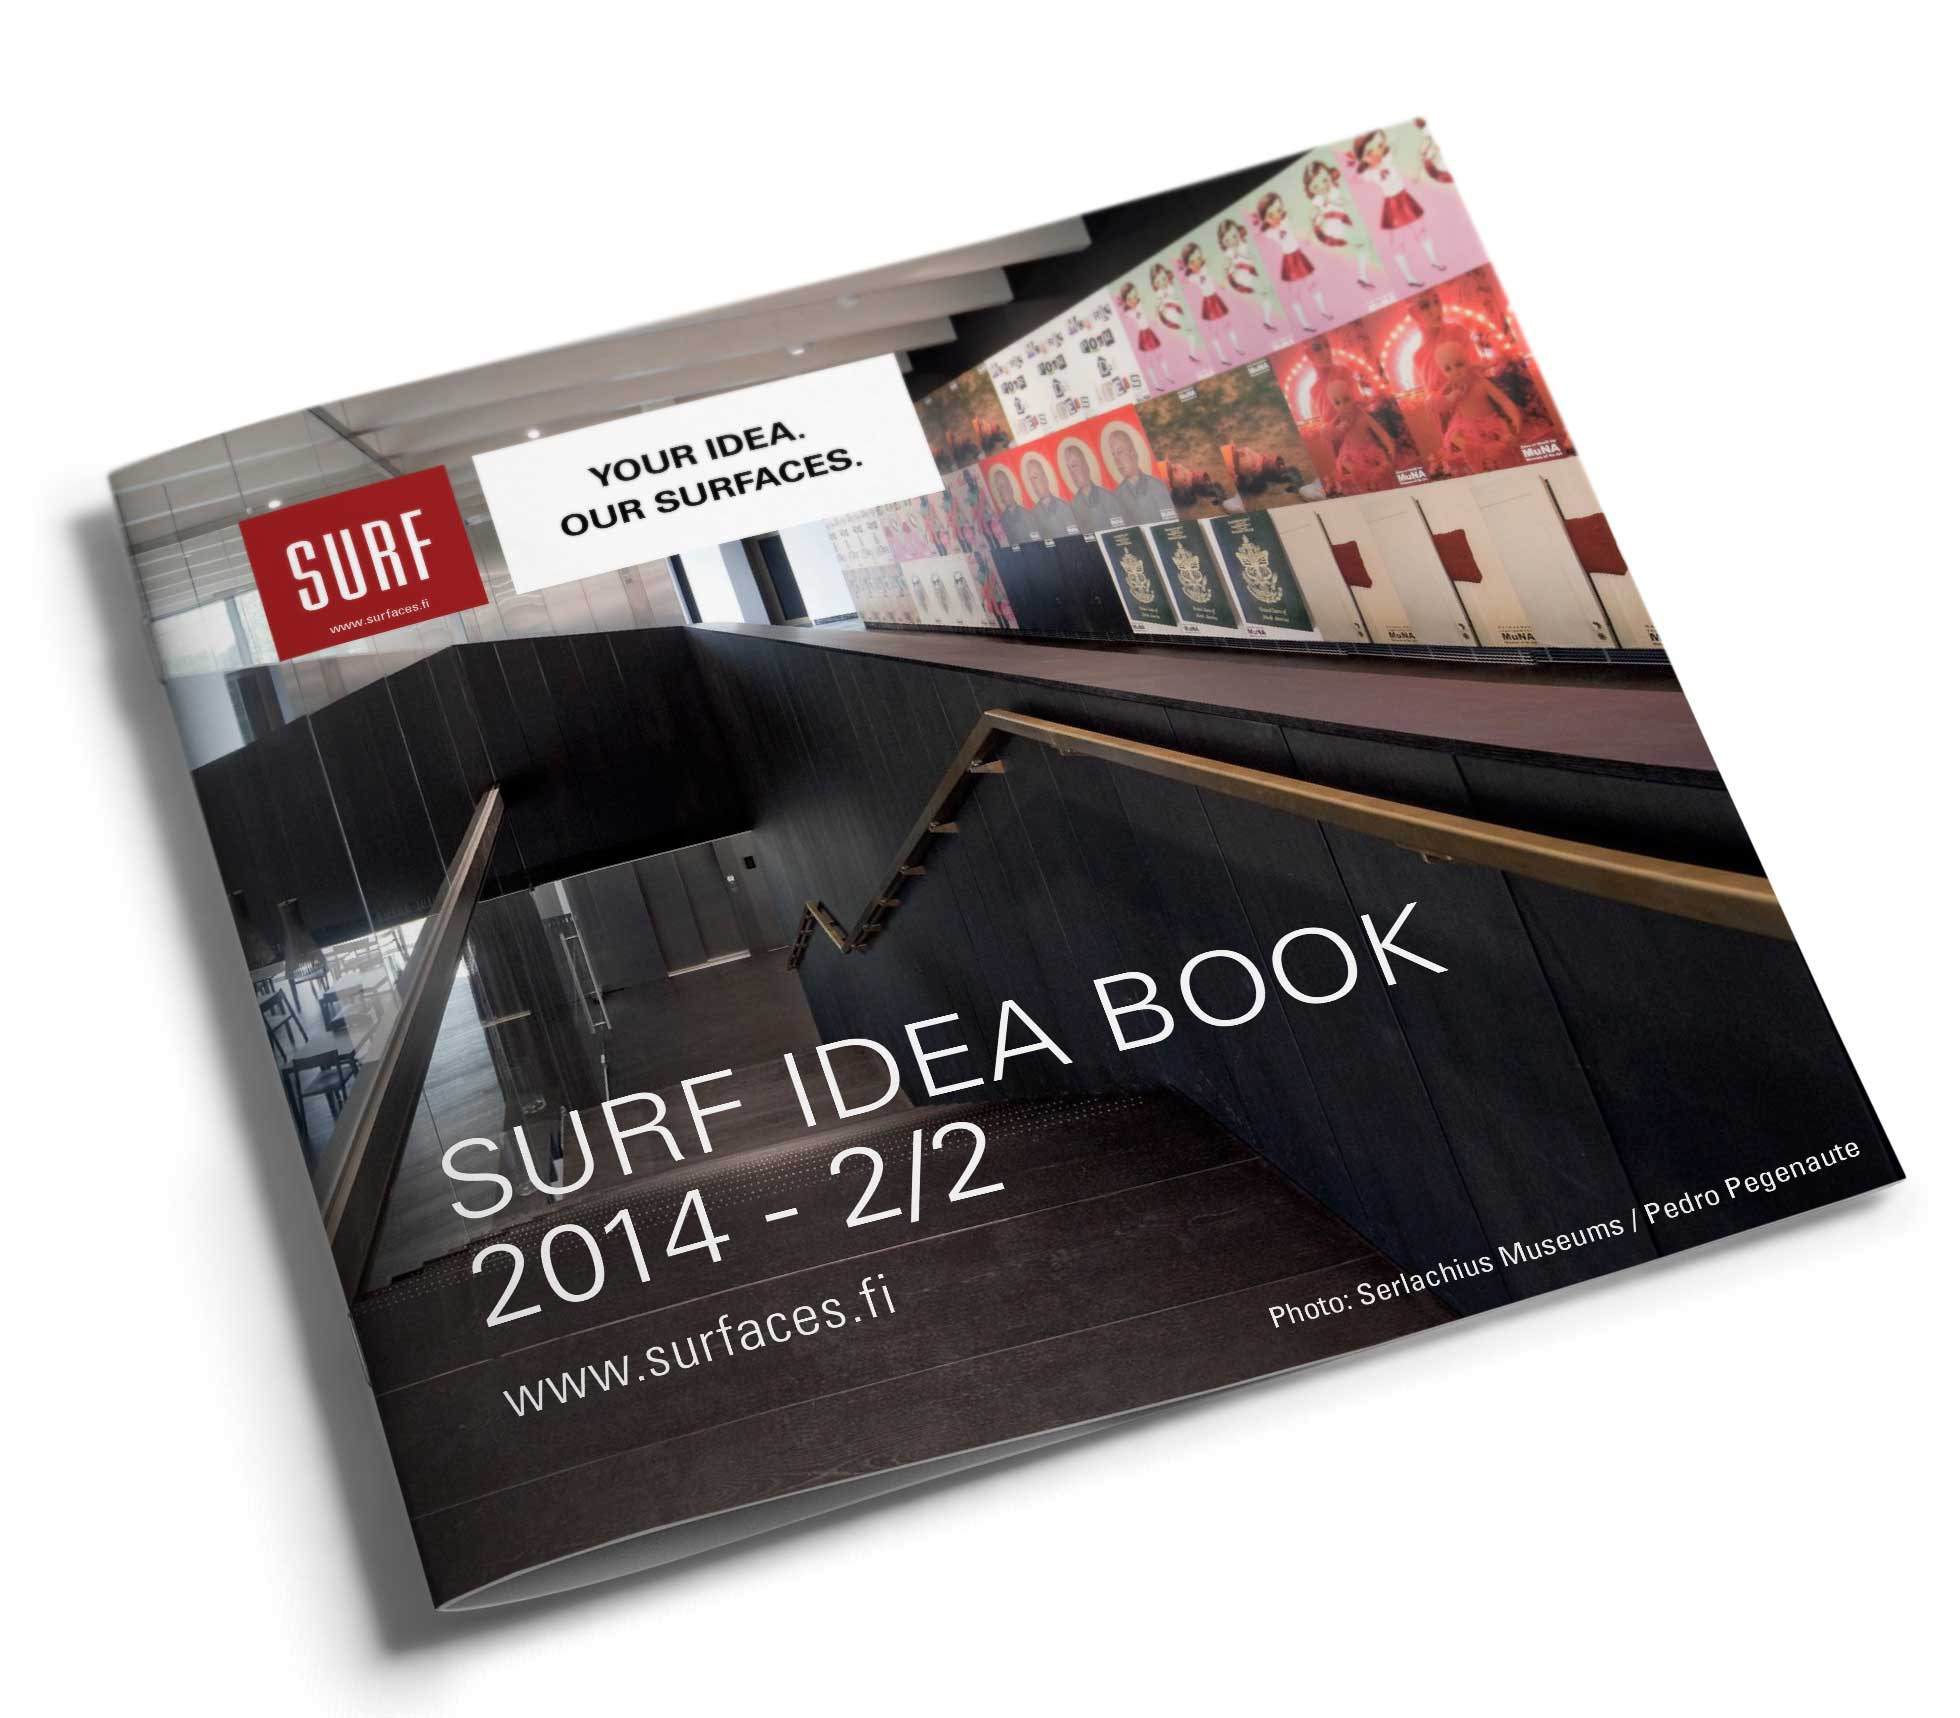 SURF Idea Book 2014 – 2/2